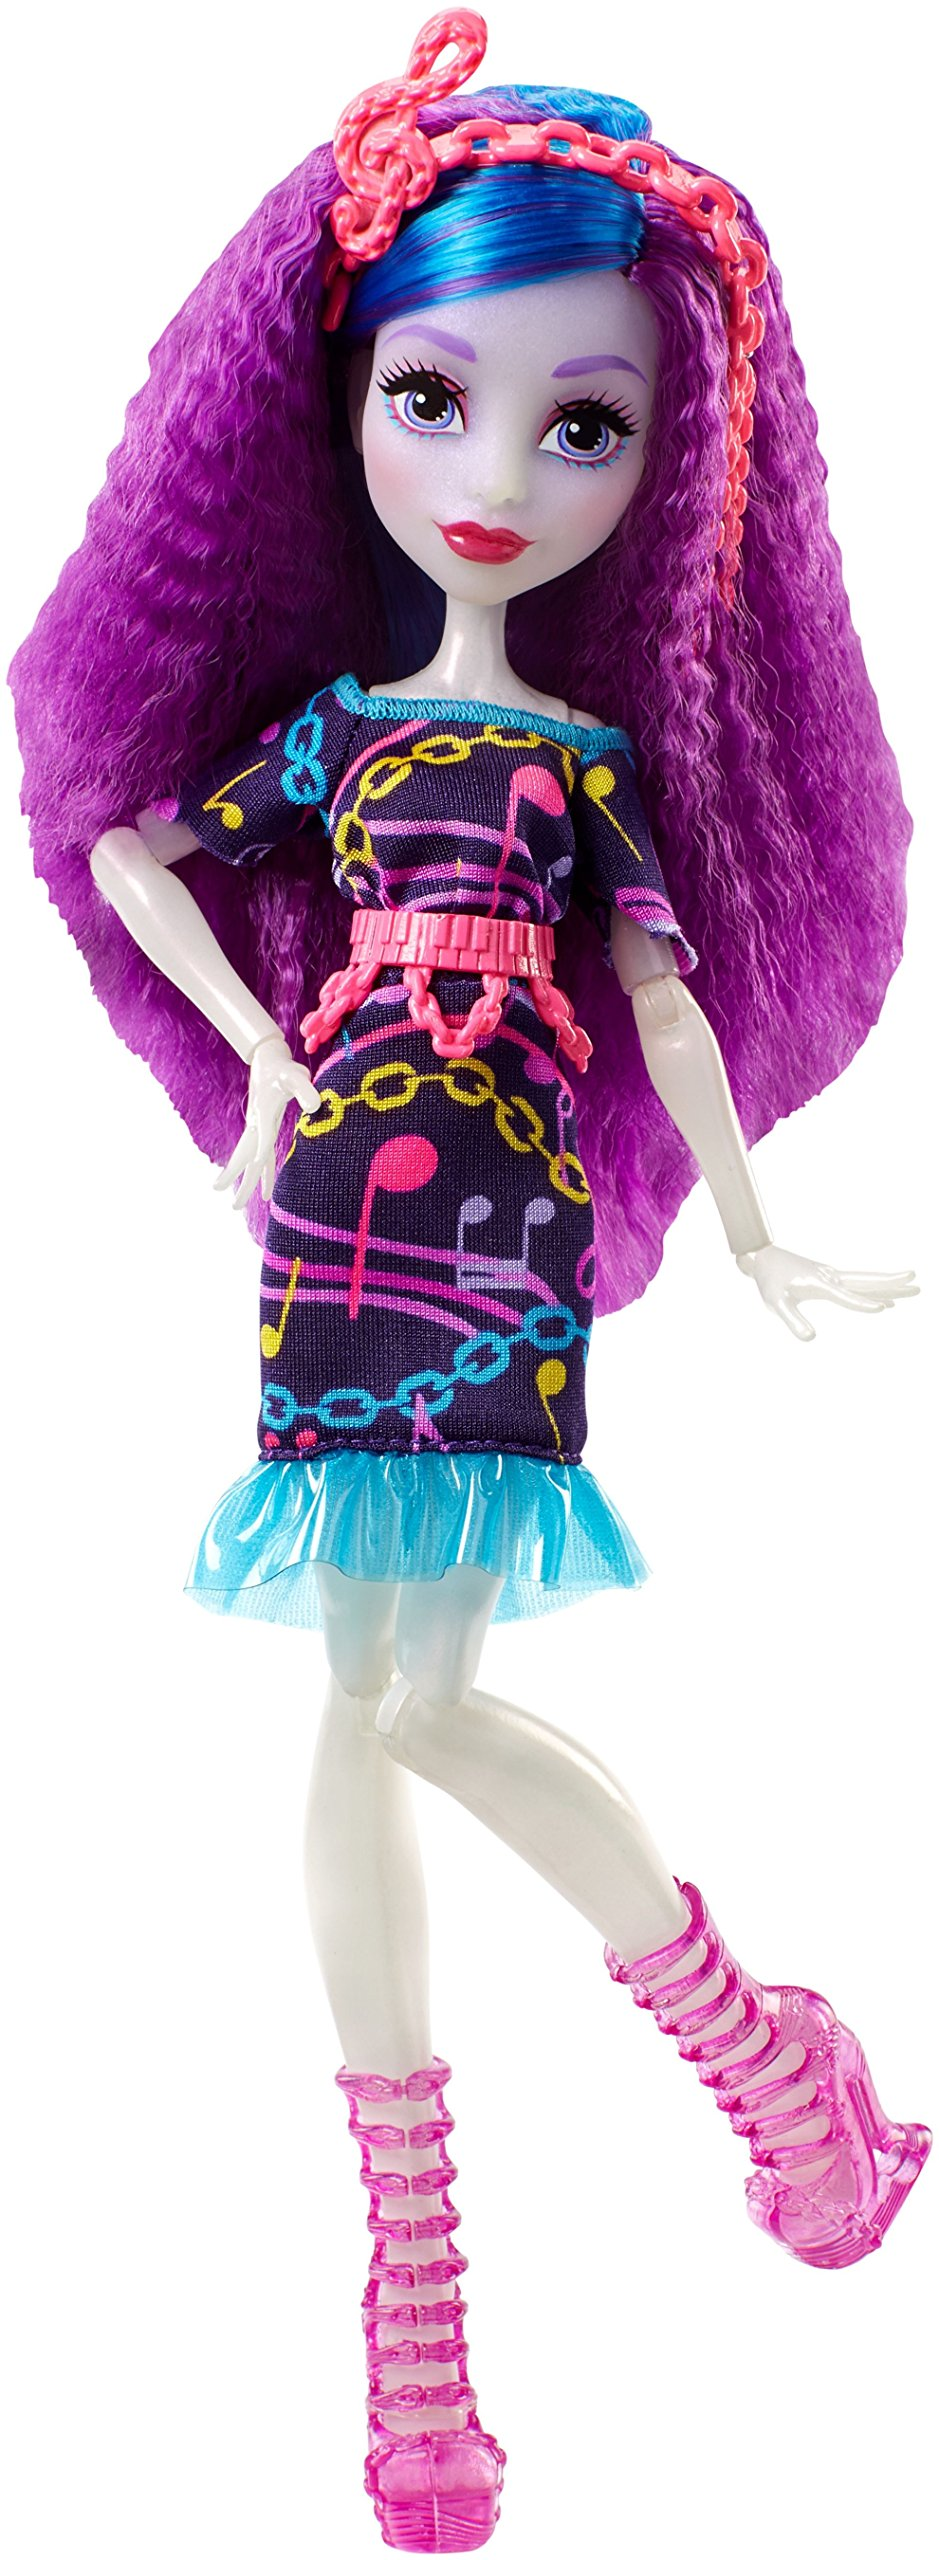 Monster High Electrified Hair-Raising Ghouls Ari Hauntington Doll by Monster High